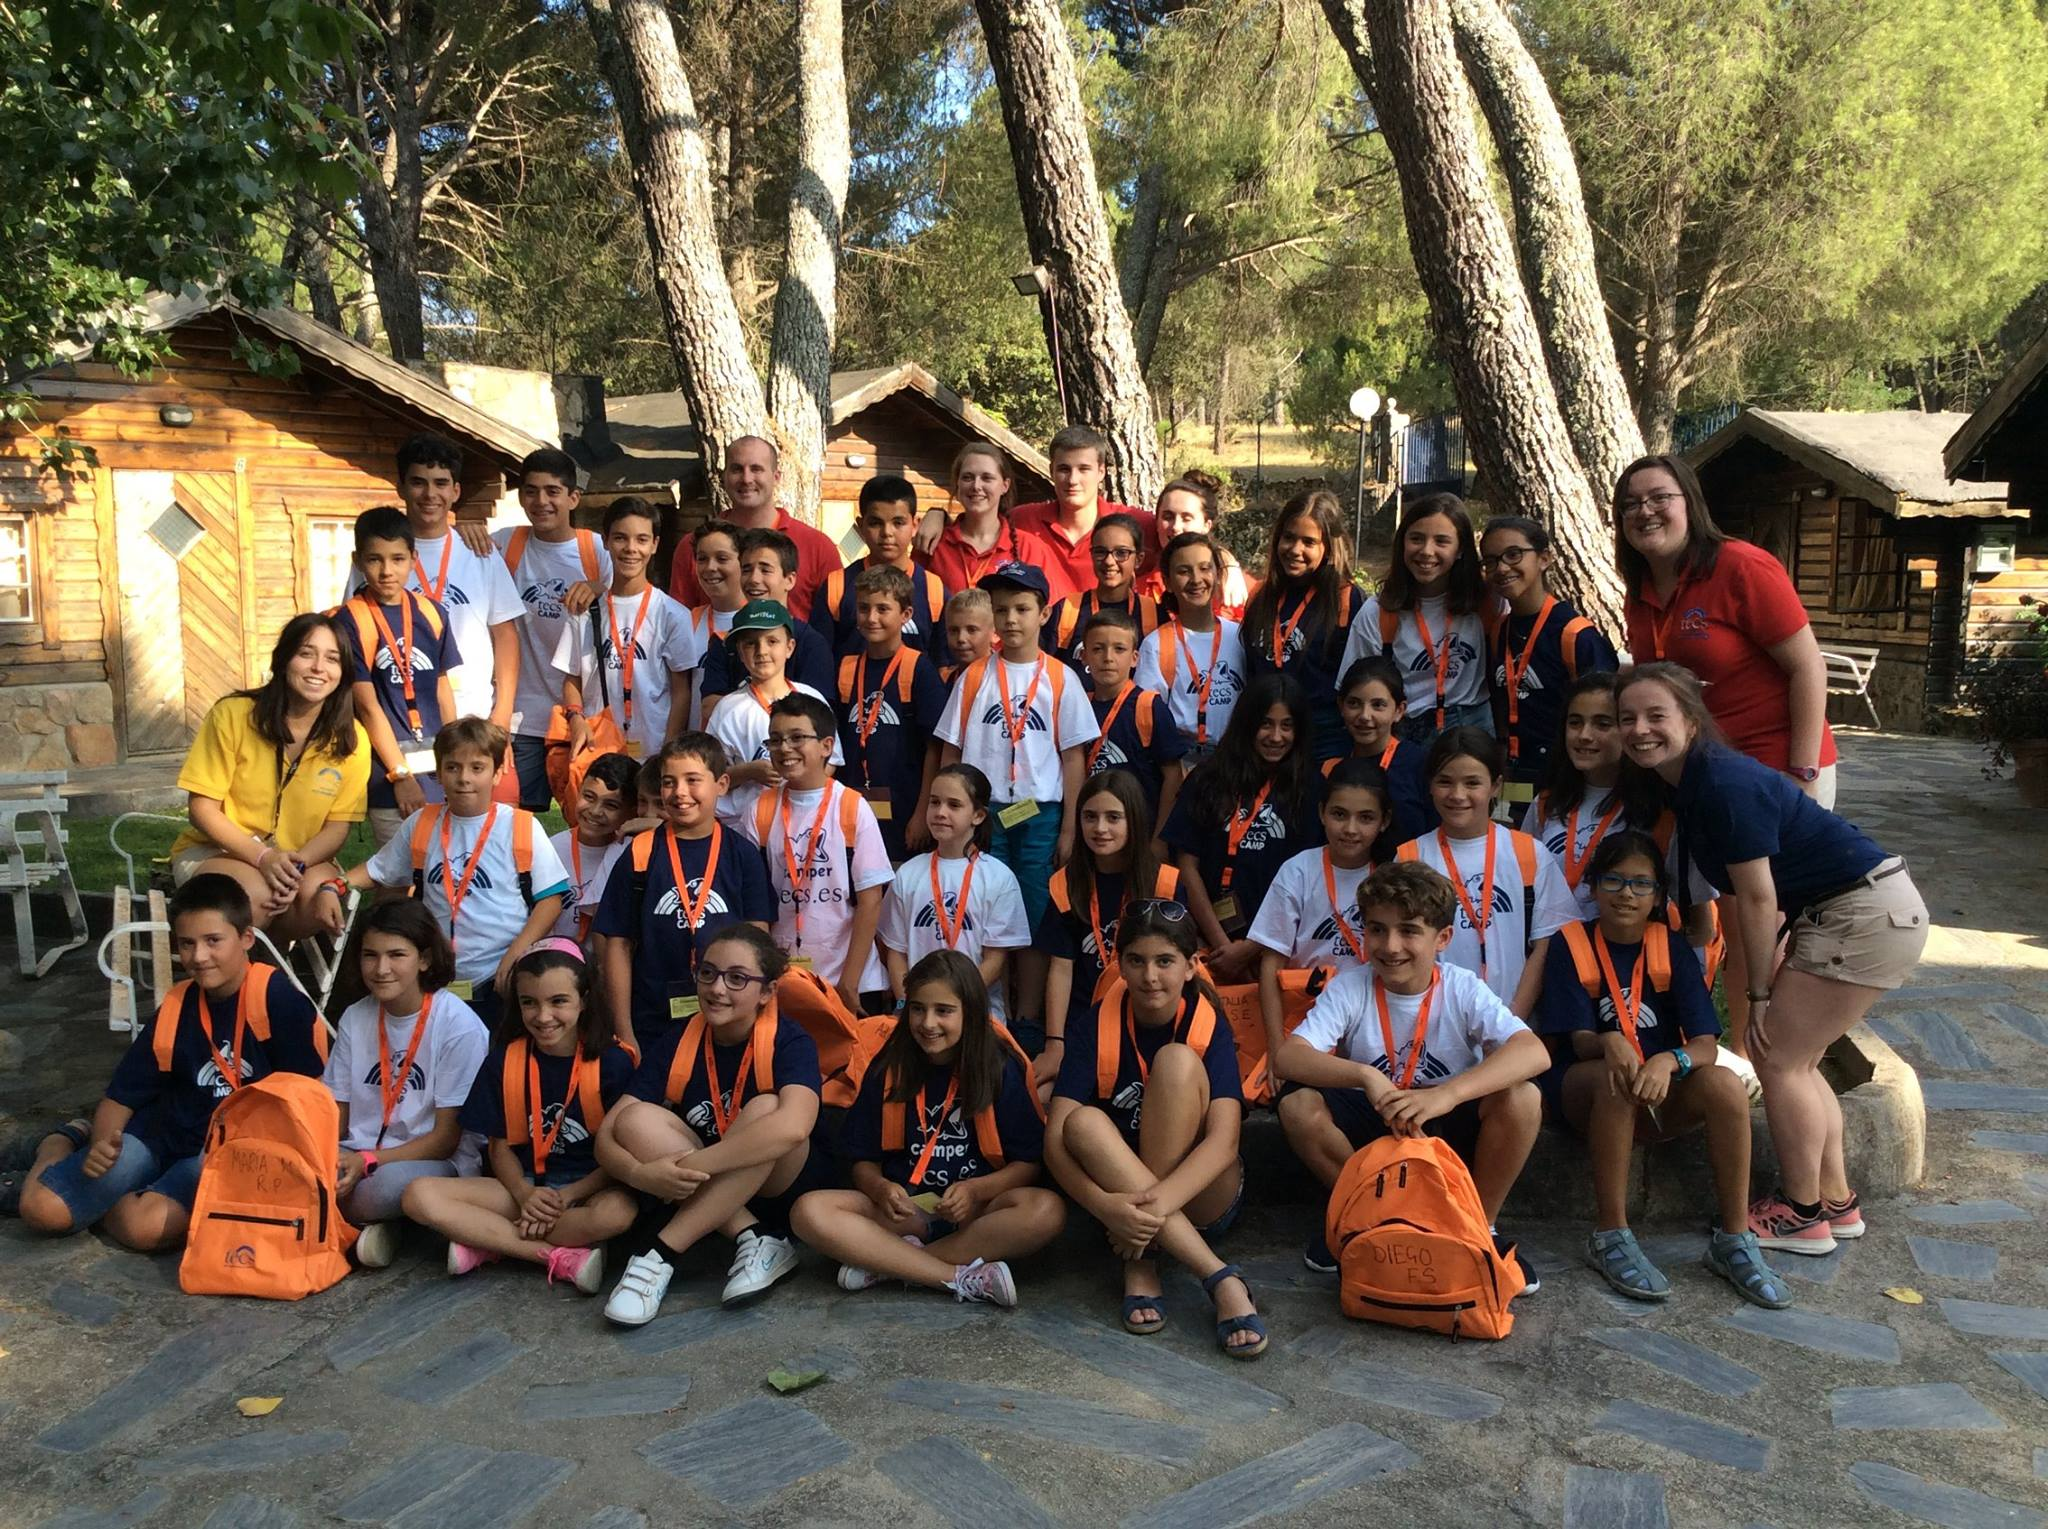 Family Camp Gredos Summer Camp